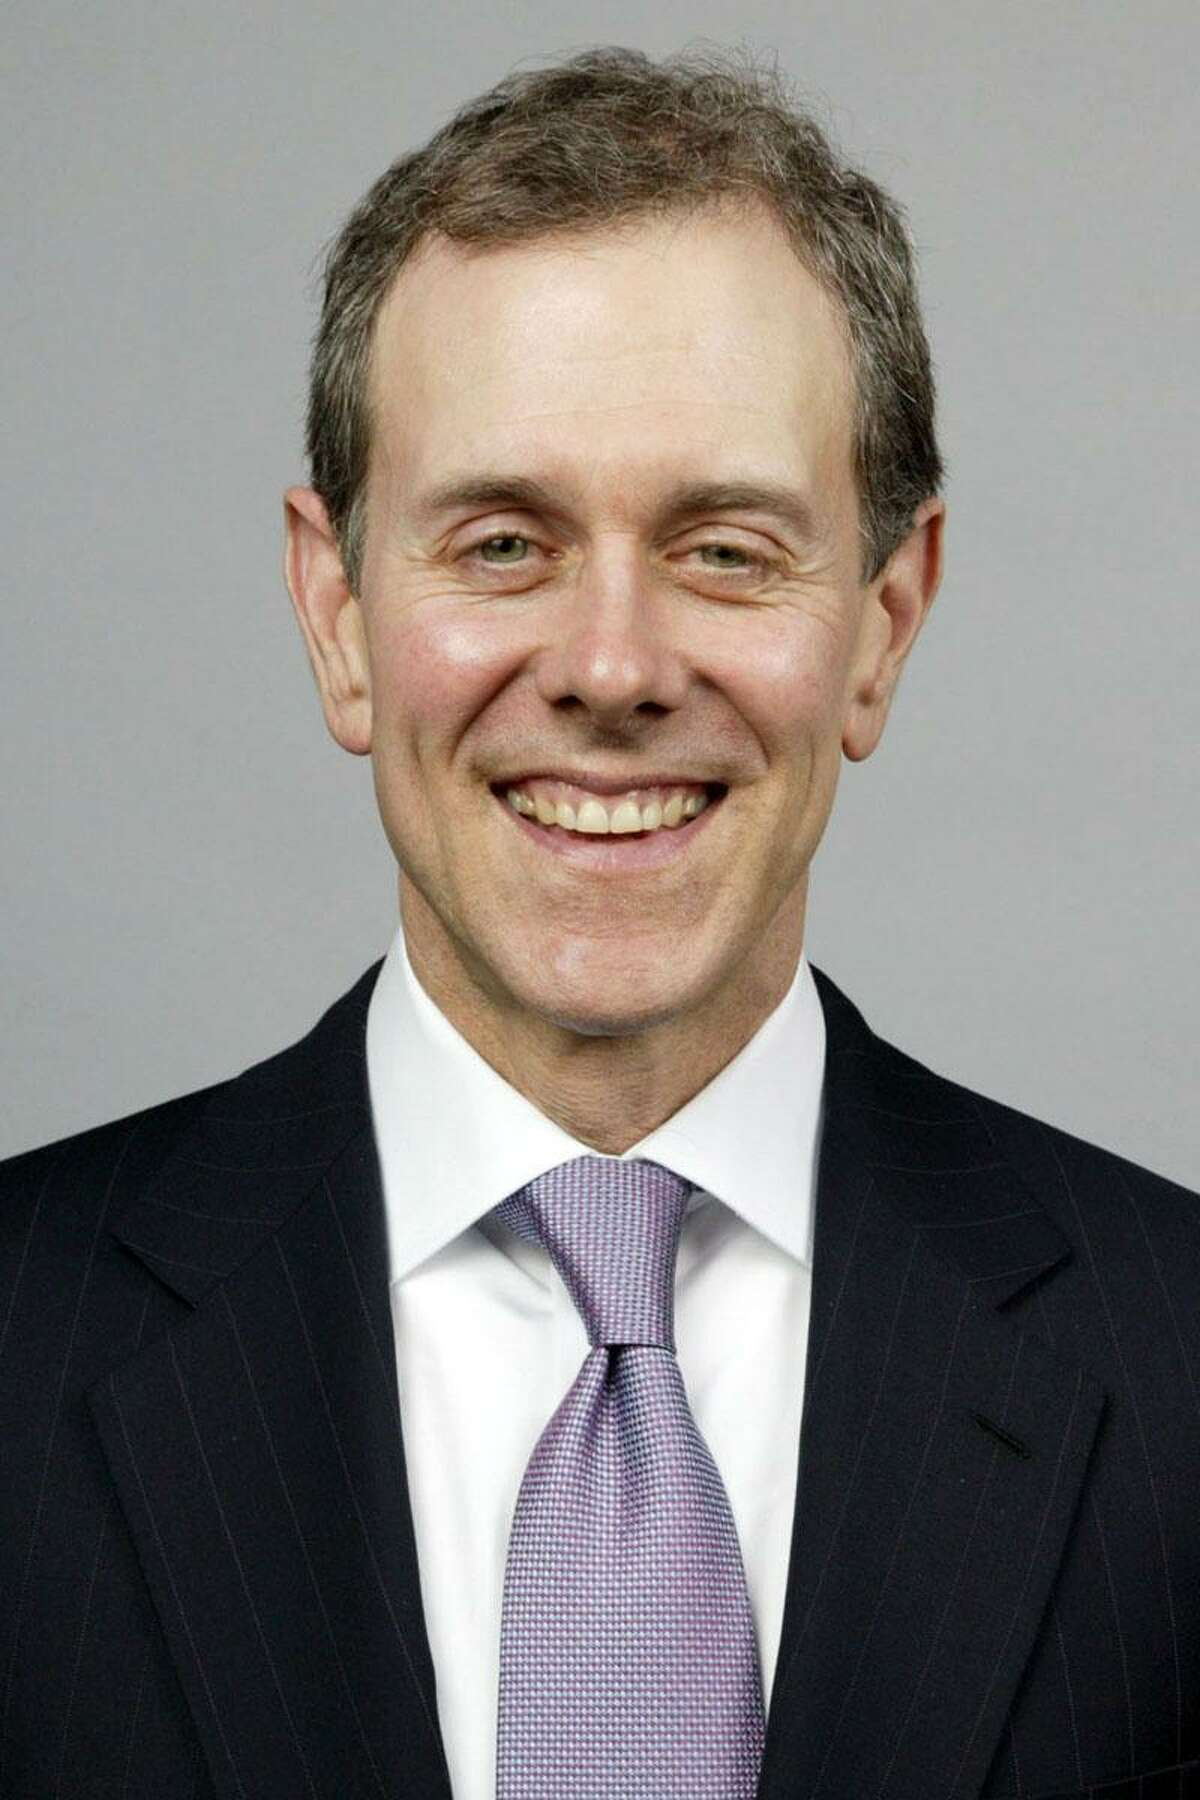 Hearst, owner of the San Antonio Express-News, got a boost from the election cycle as well as its investment in health care, President and CEO Steven R. Swartz said.